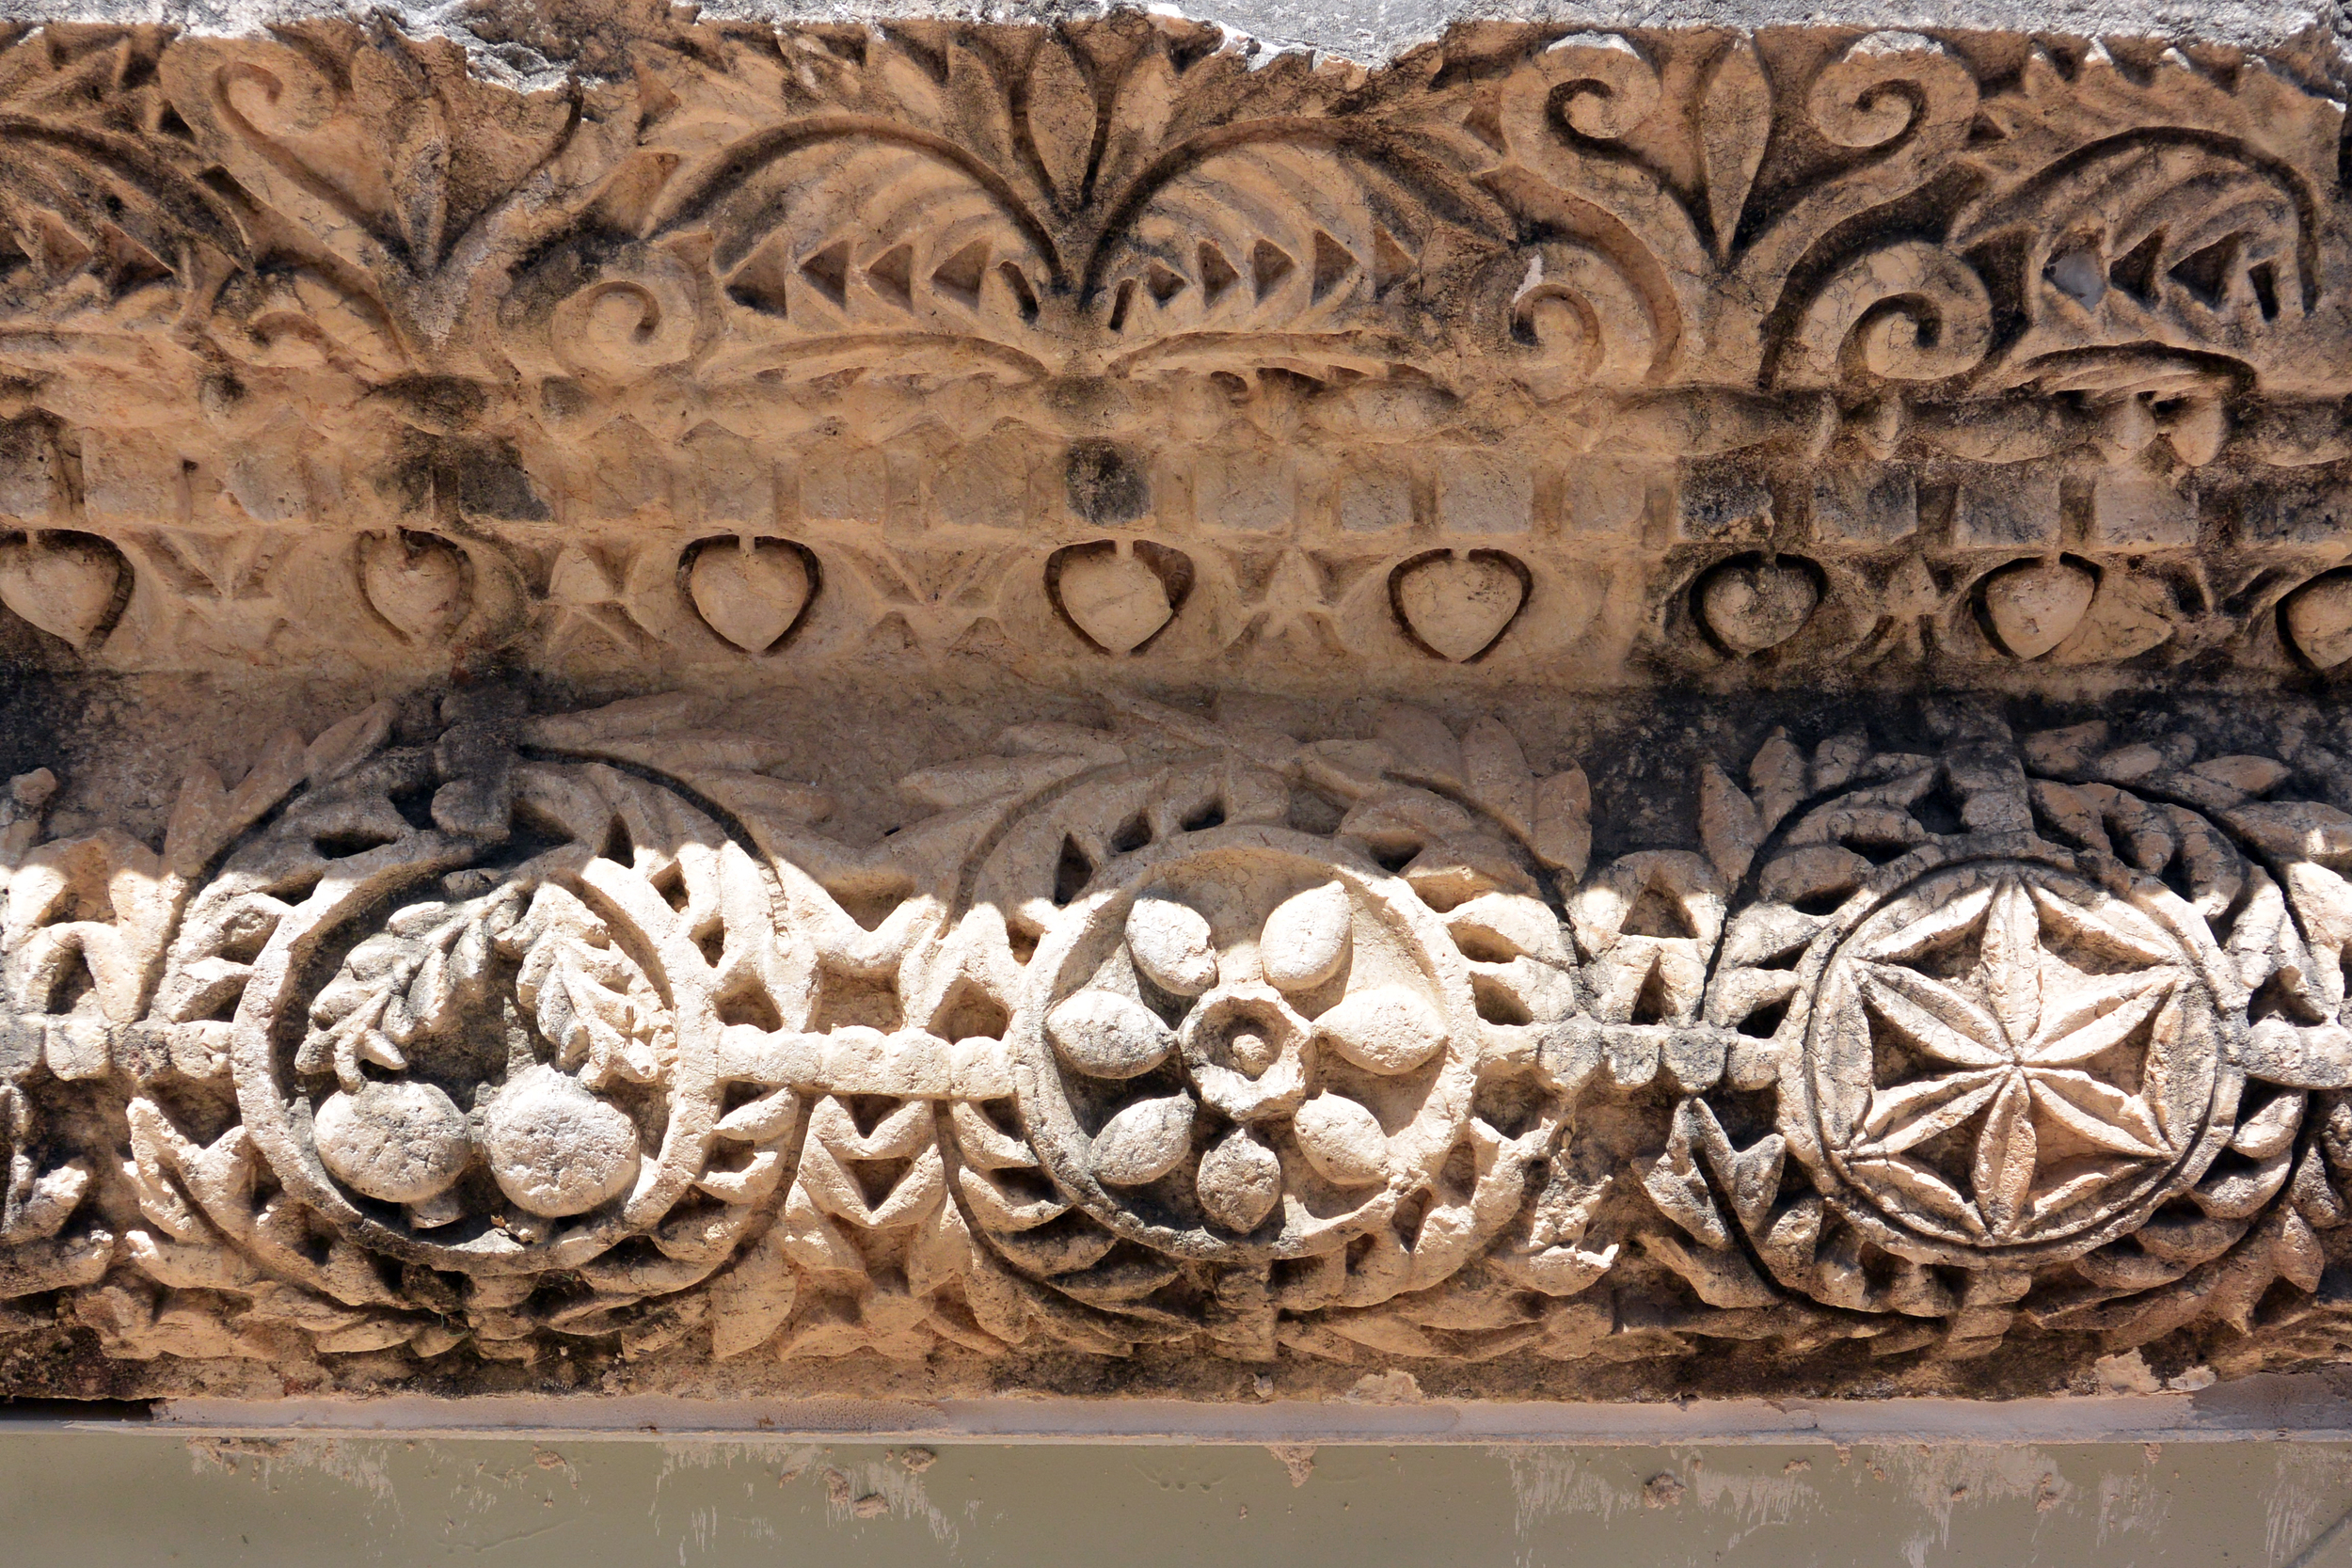 Gorgeous carvings